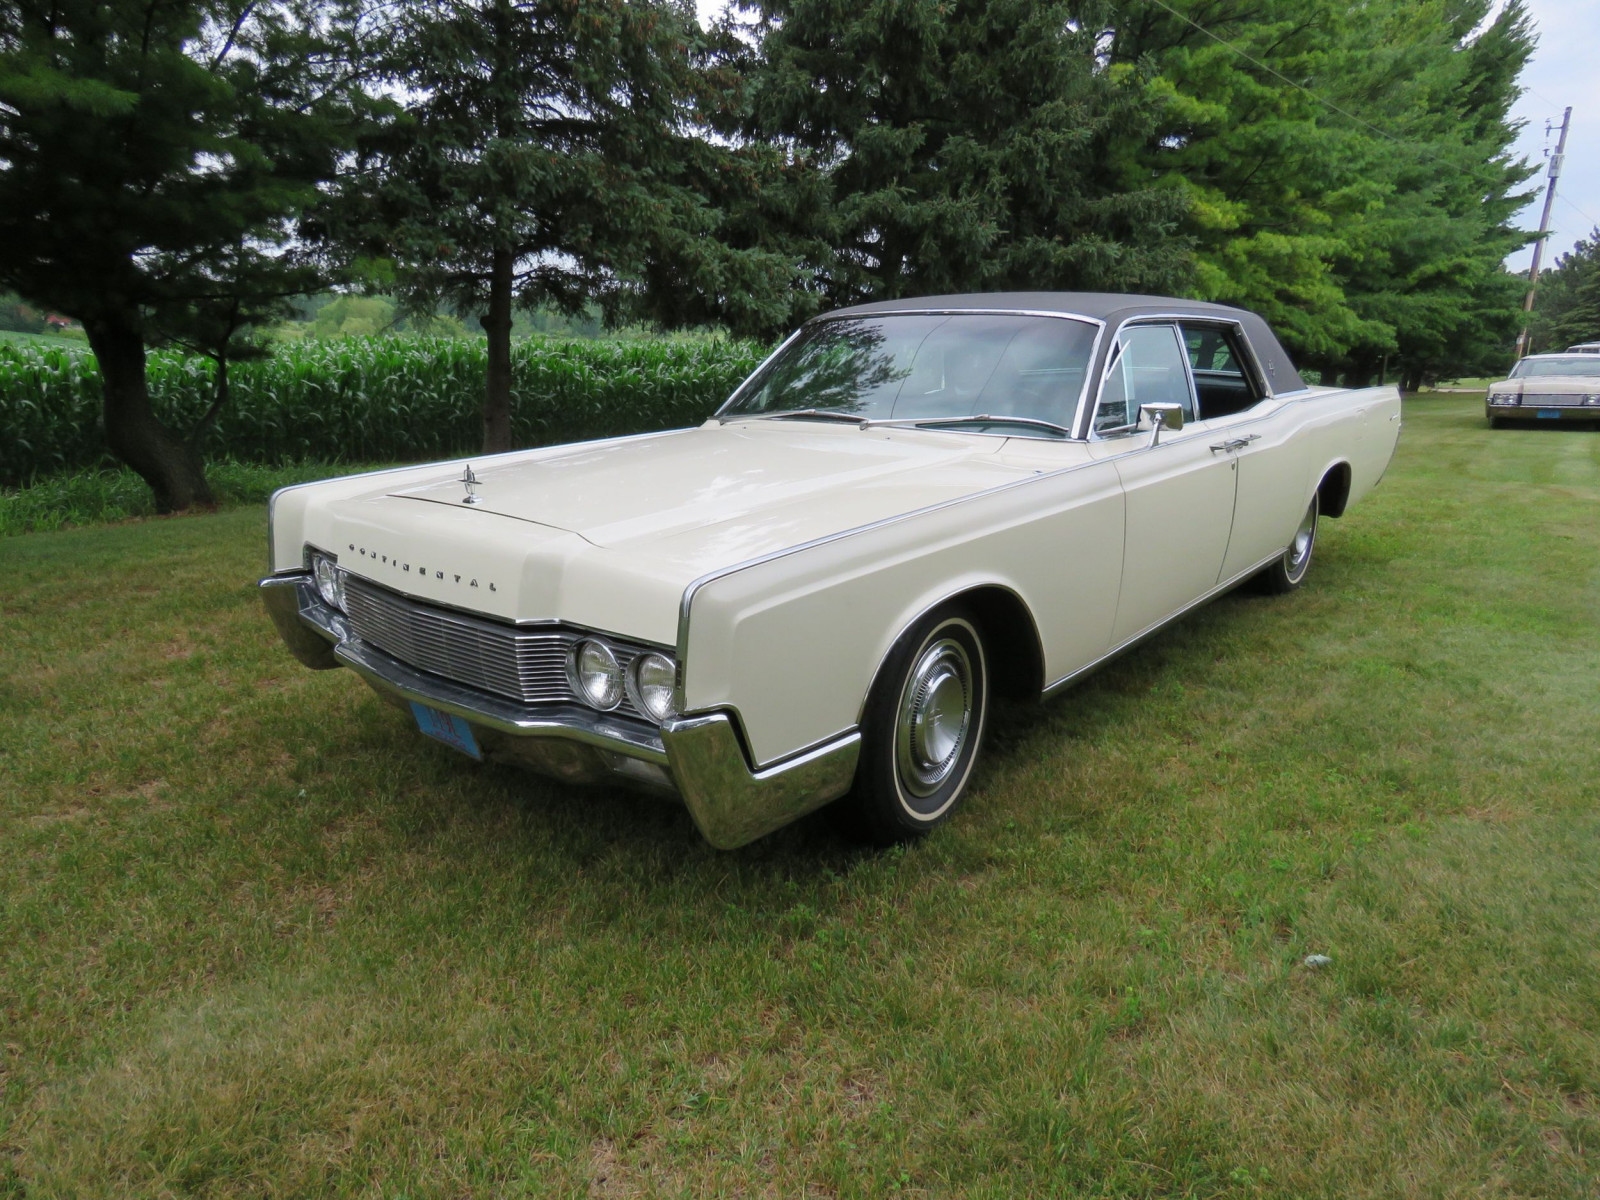 1967 Lincoln Continental 4dr HT Suicide Sedan - Image 1